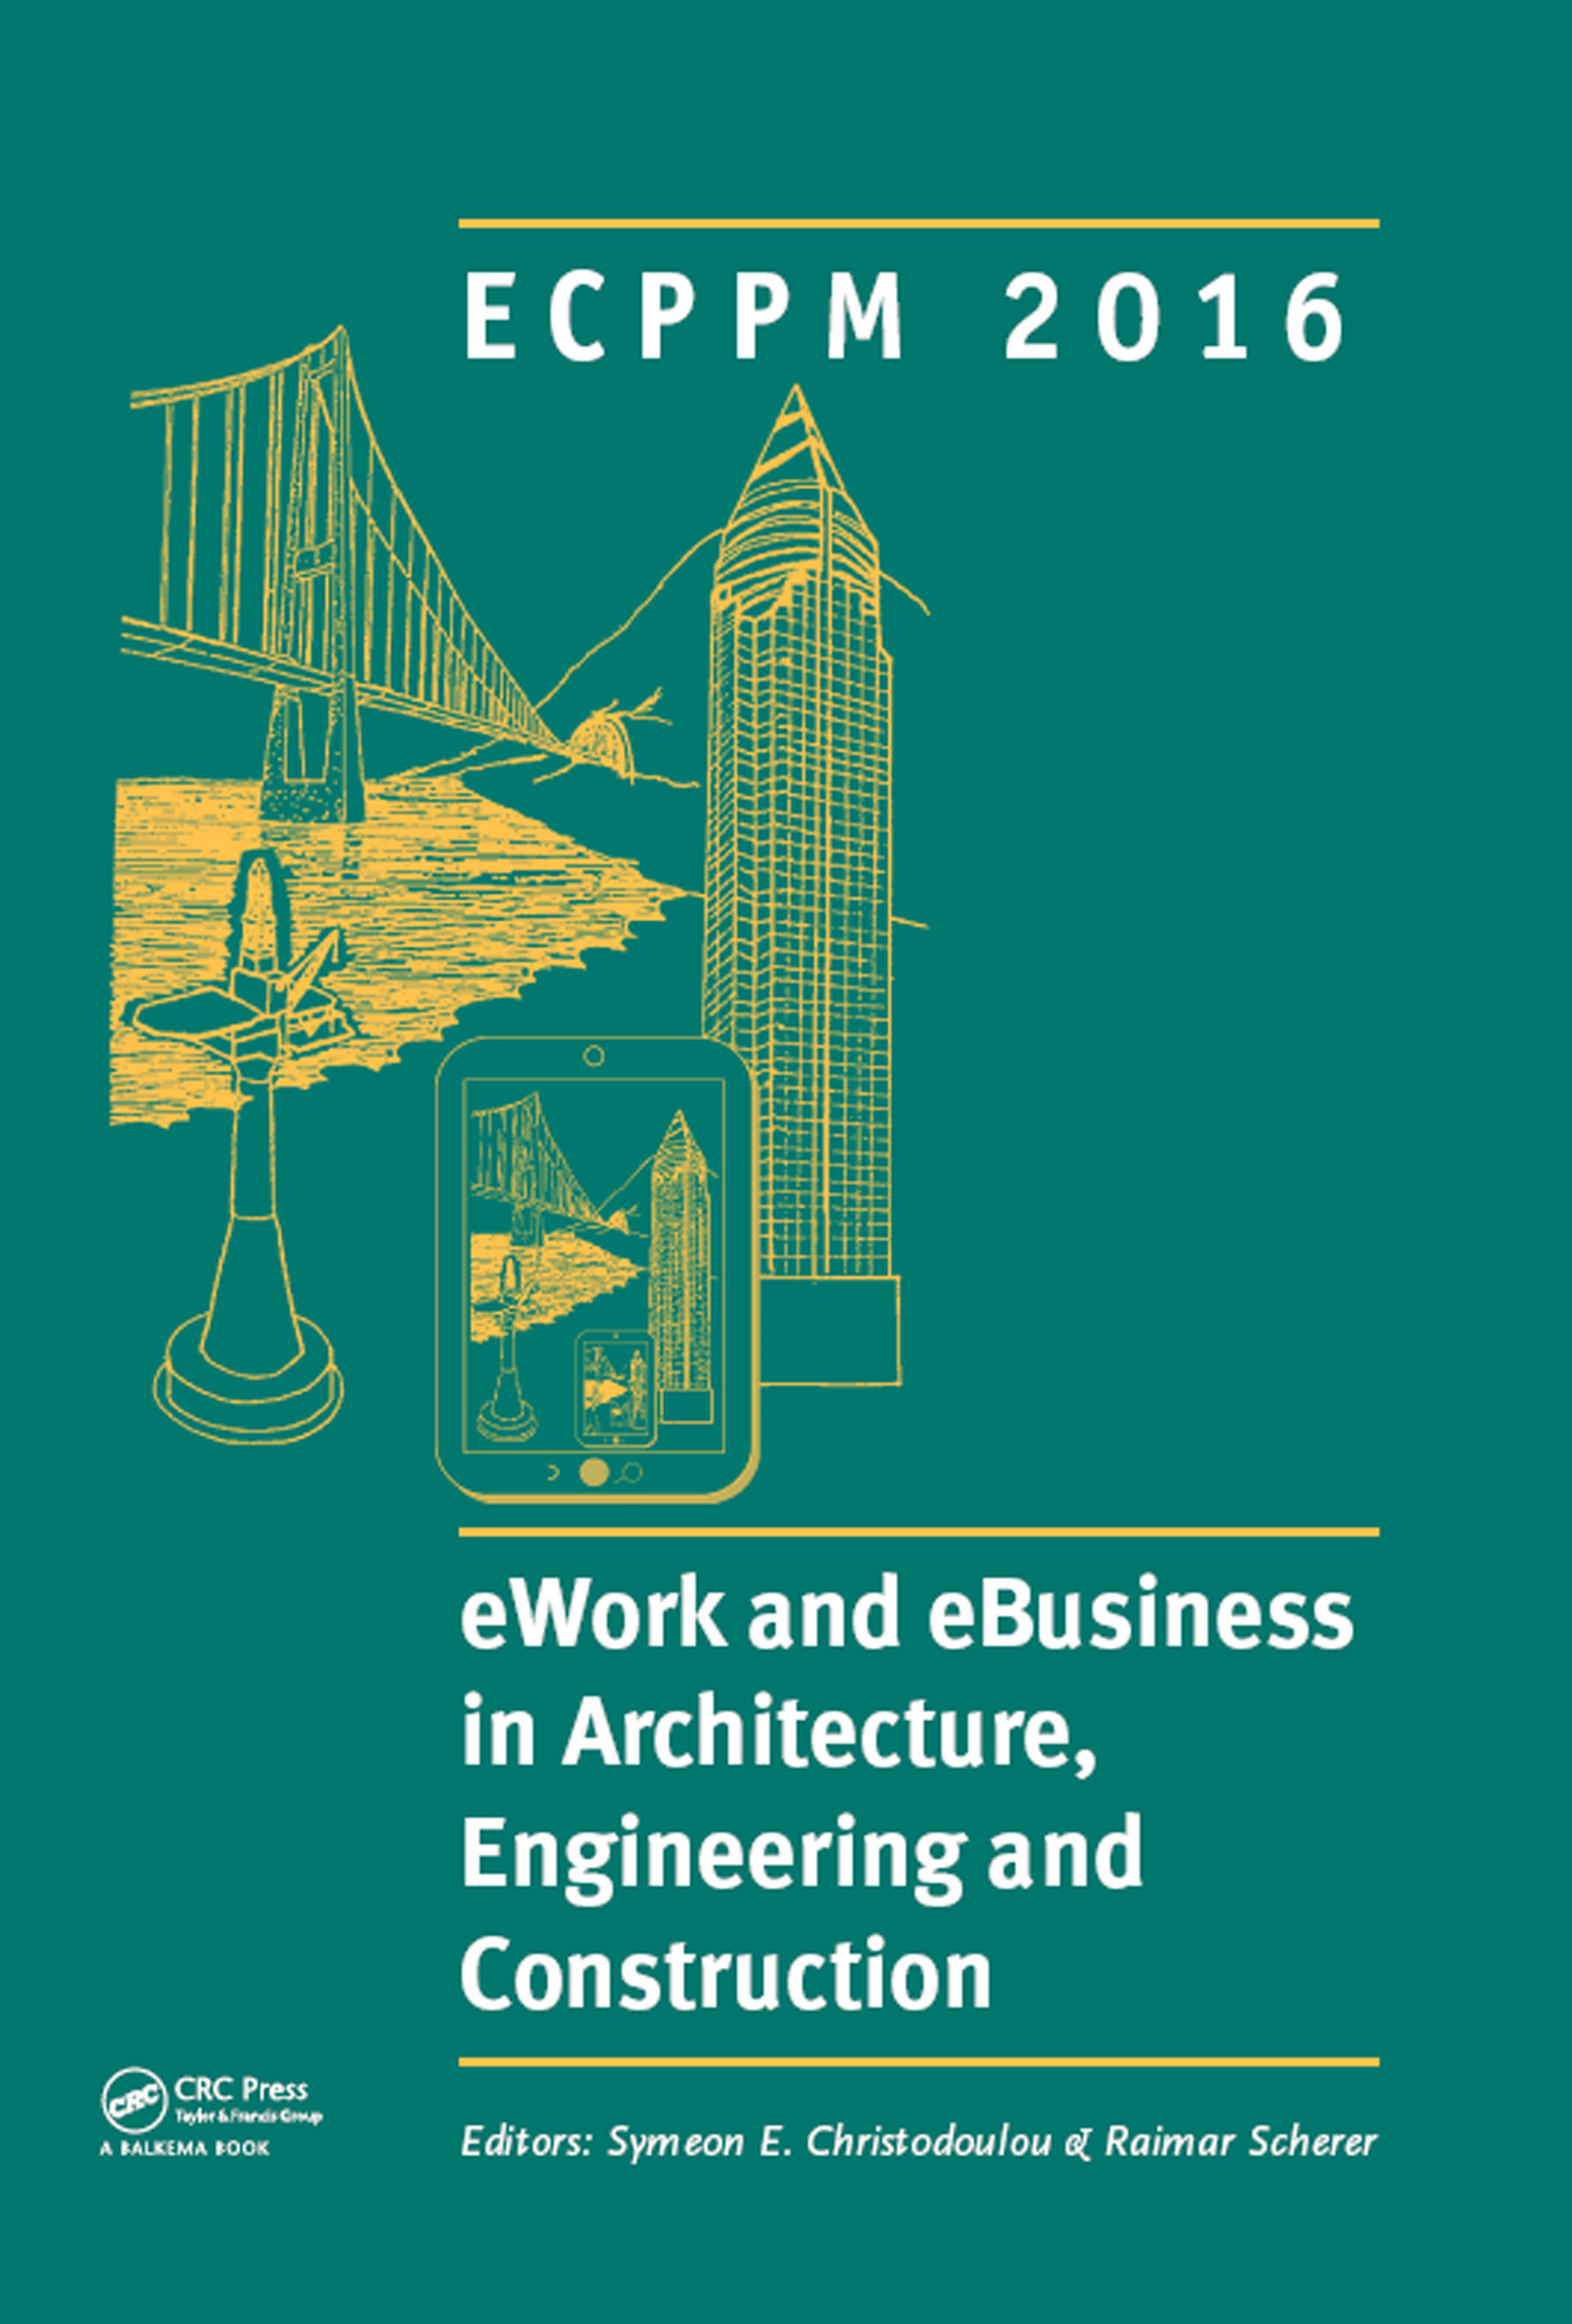 eWork and eBusiness in Architecture, Engineering and Construction: ECPPM 2016: Proceedings of the 11th European Conference on Product and Process Modelling (ECPPM 2016), Limassol, Cyprus, 7-9 September 2016, 1st Edition (Hardback) book cover